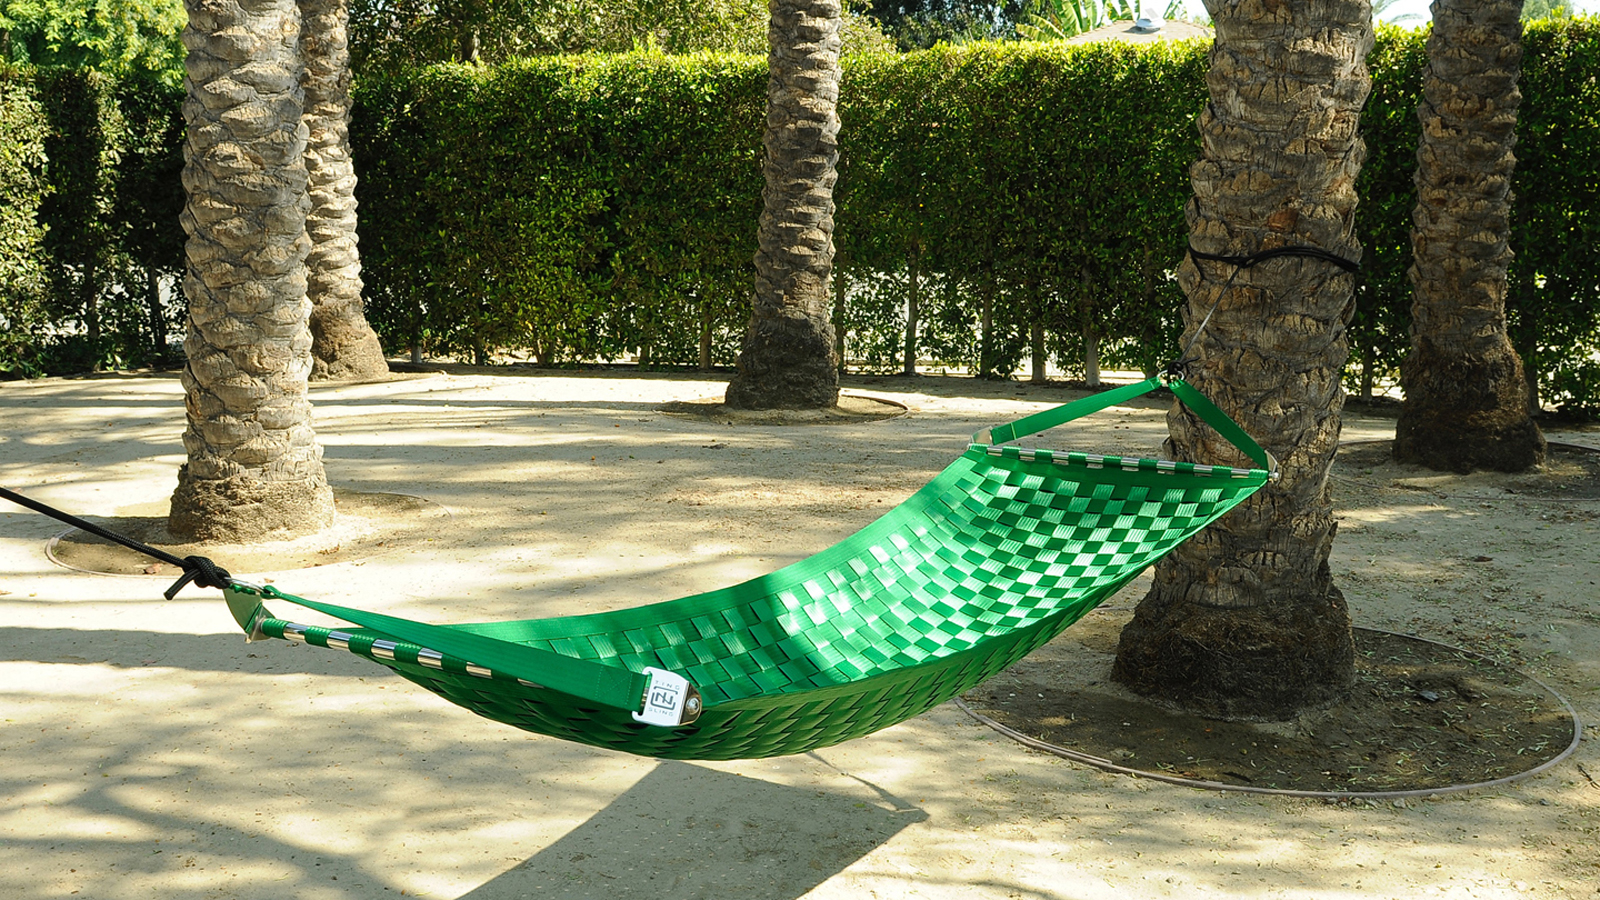 Lime green Ting Sling hammock hanging among palm trees in the outdoor area surrounding a Los Angeles office space.